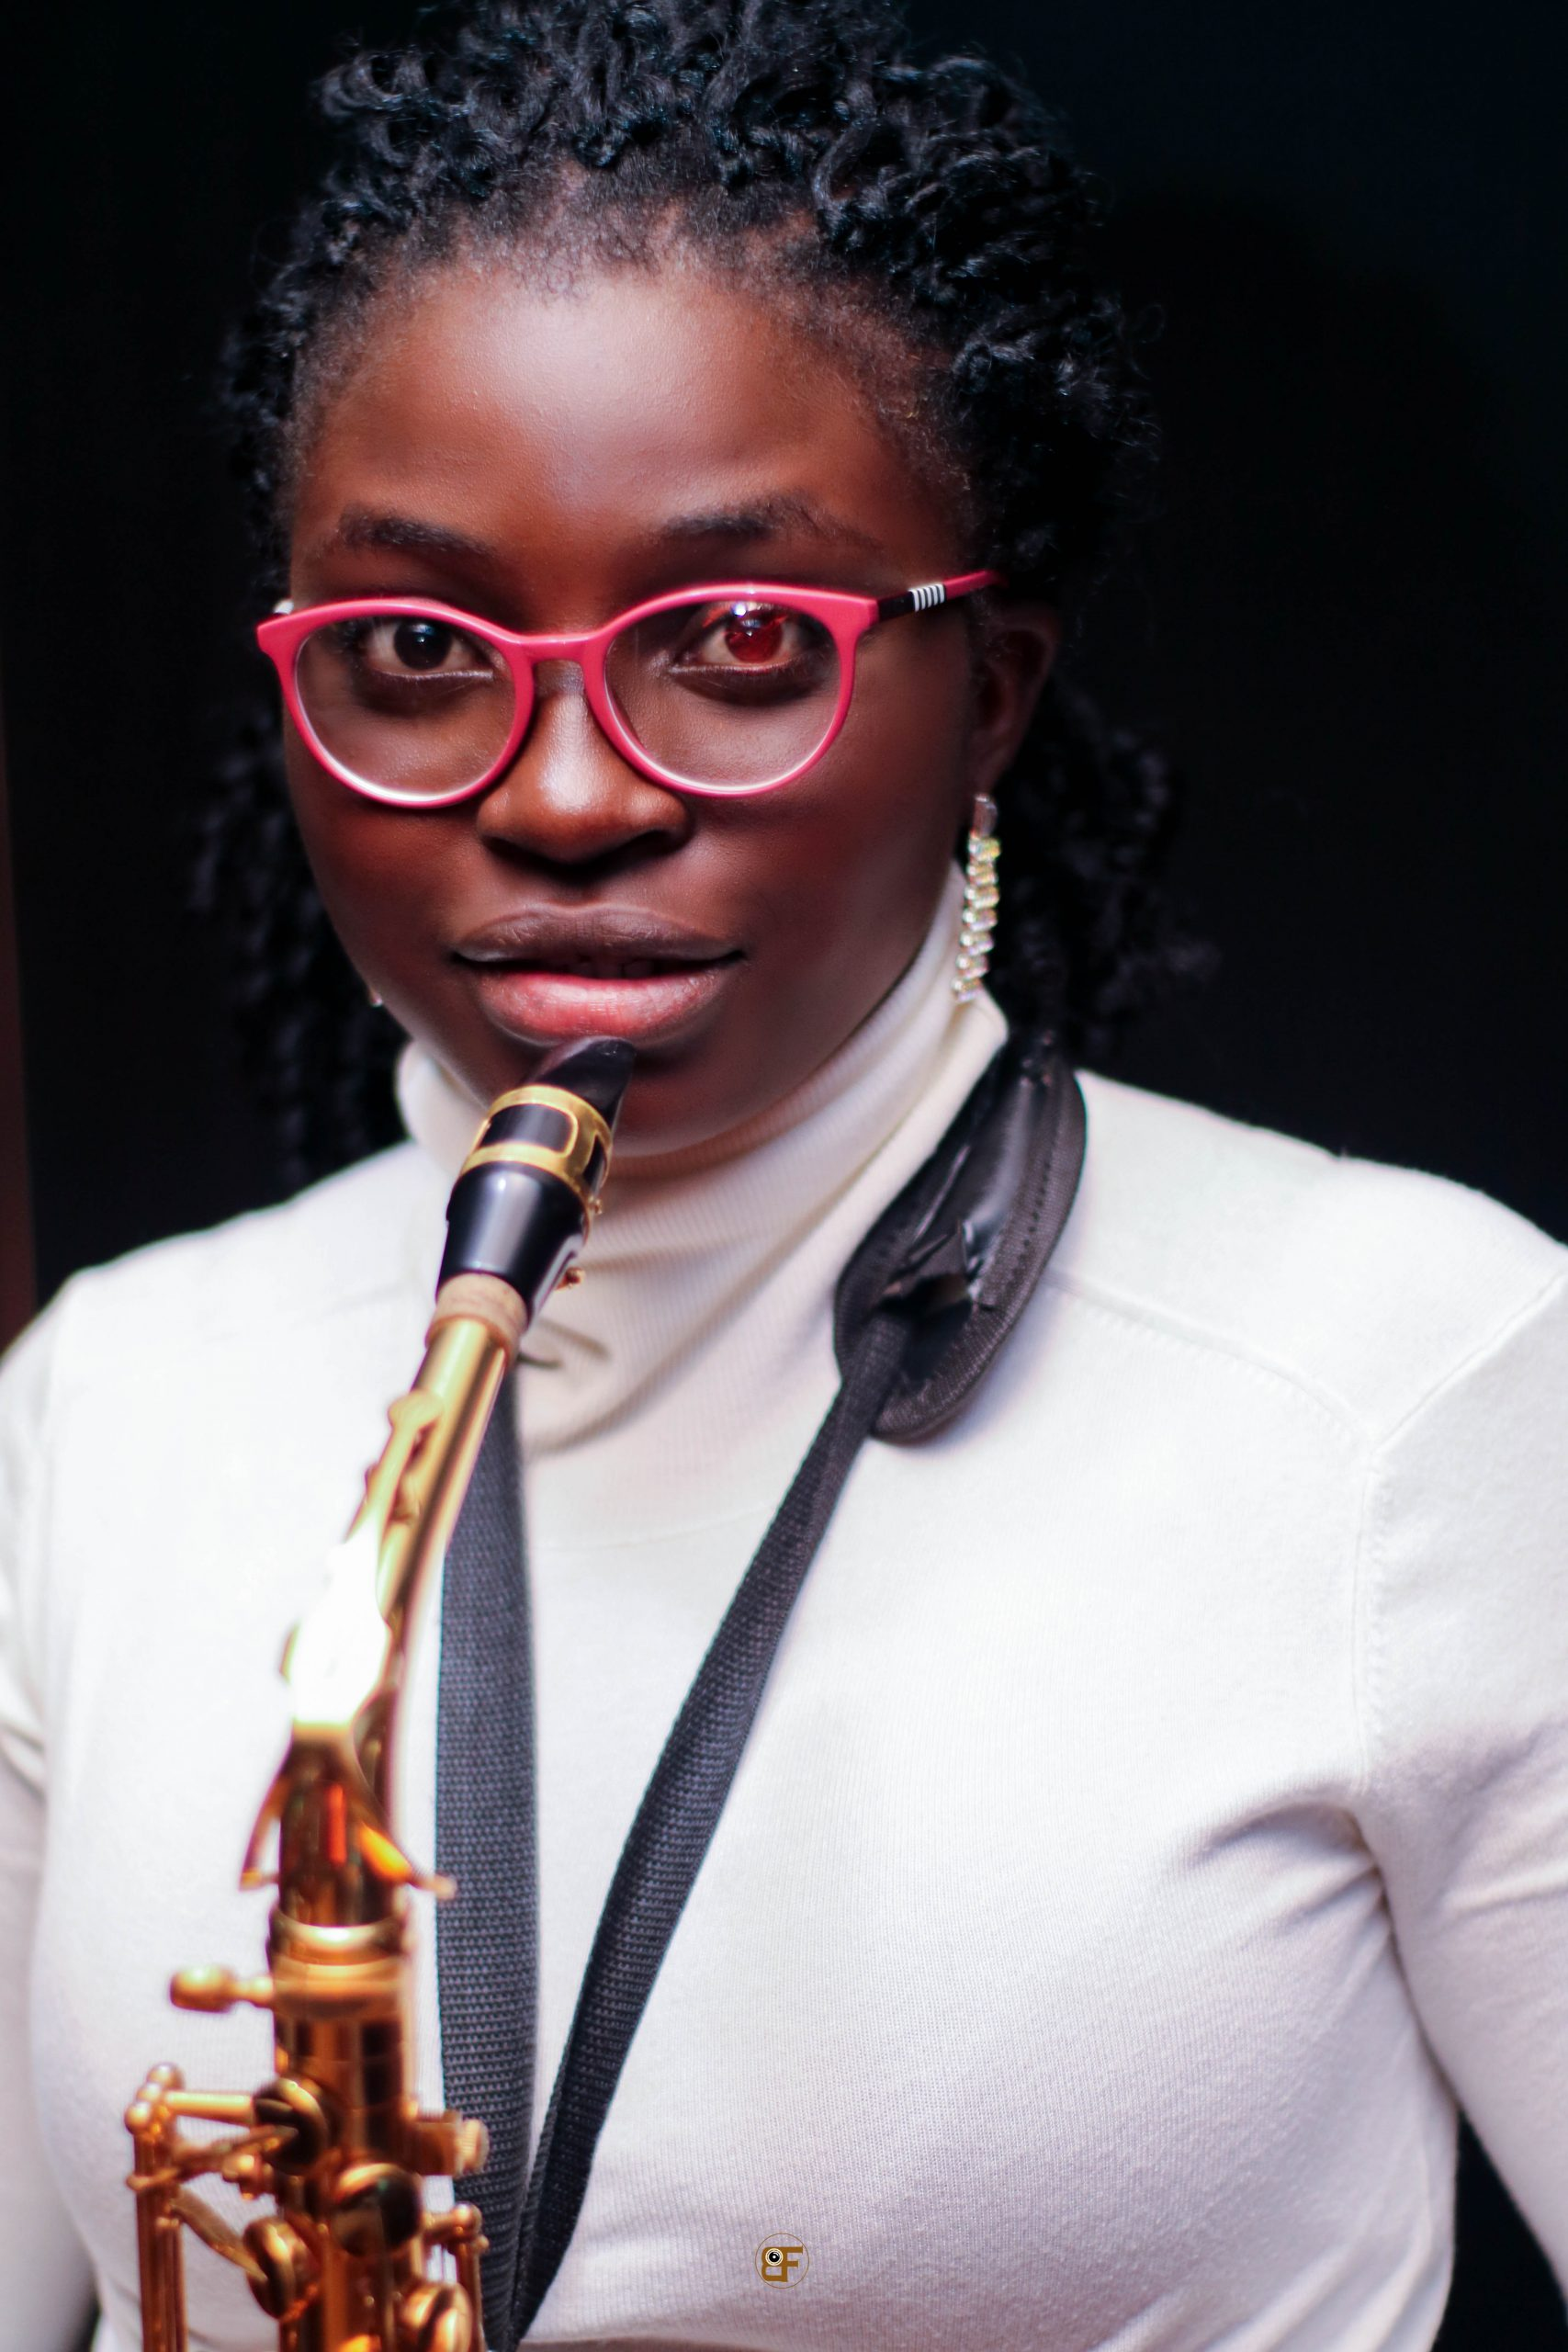 Young & Talented Female Saxophonist Tomini Sax Drops a Praise Session on YouTube